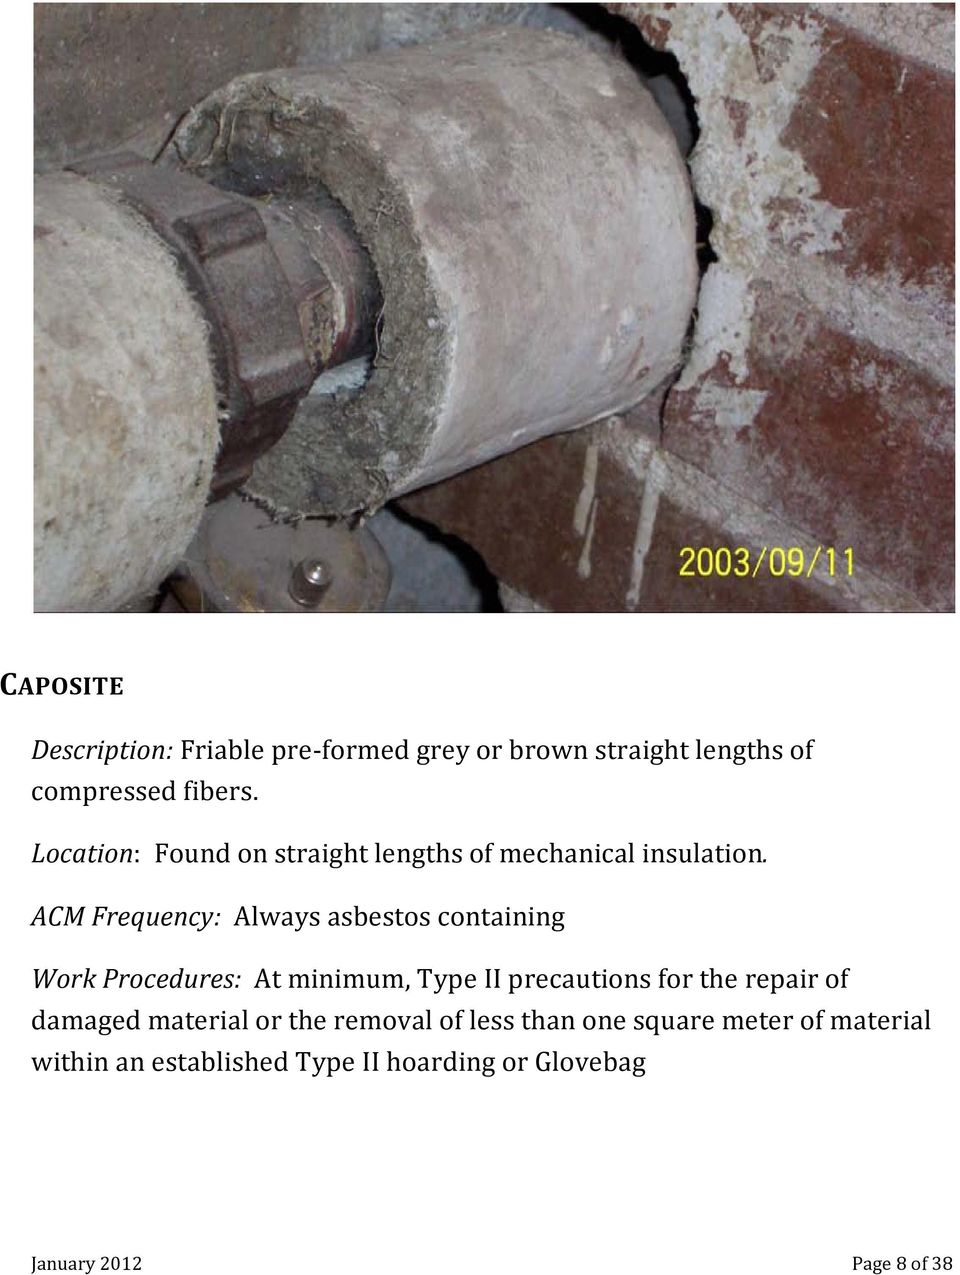 ACM Frequency: Always asbestos containing Work Procedures: At minimum, Type II precautions for the